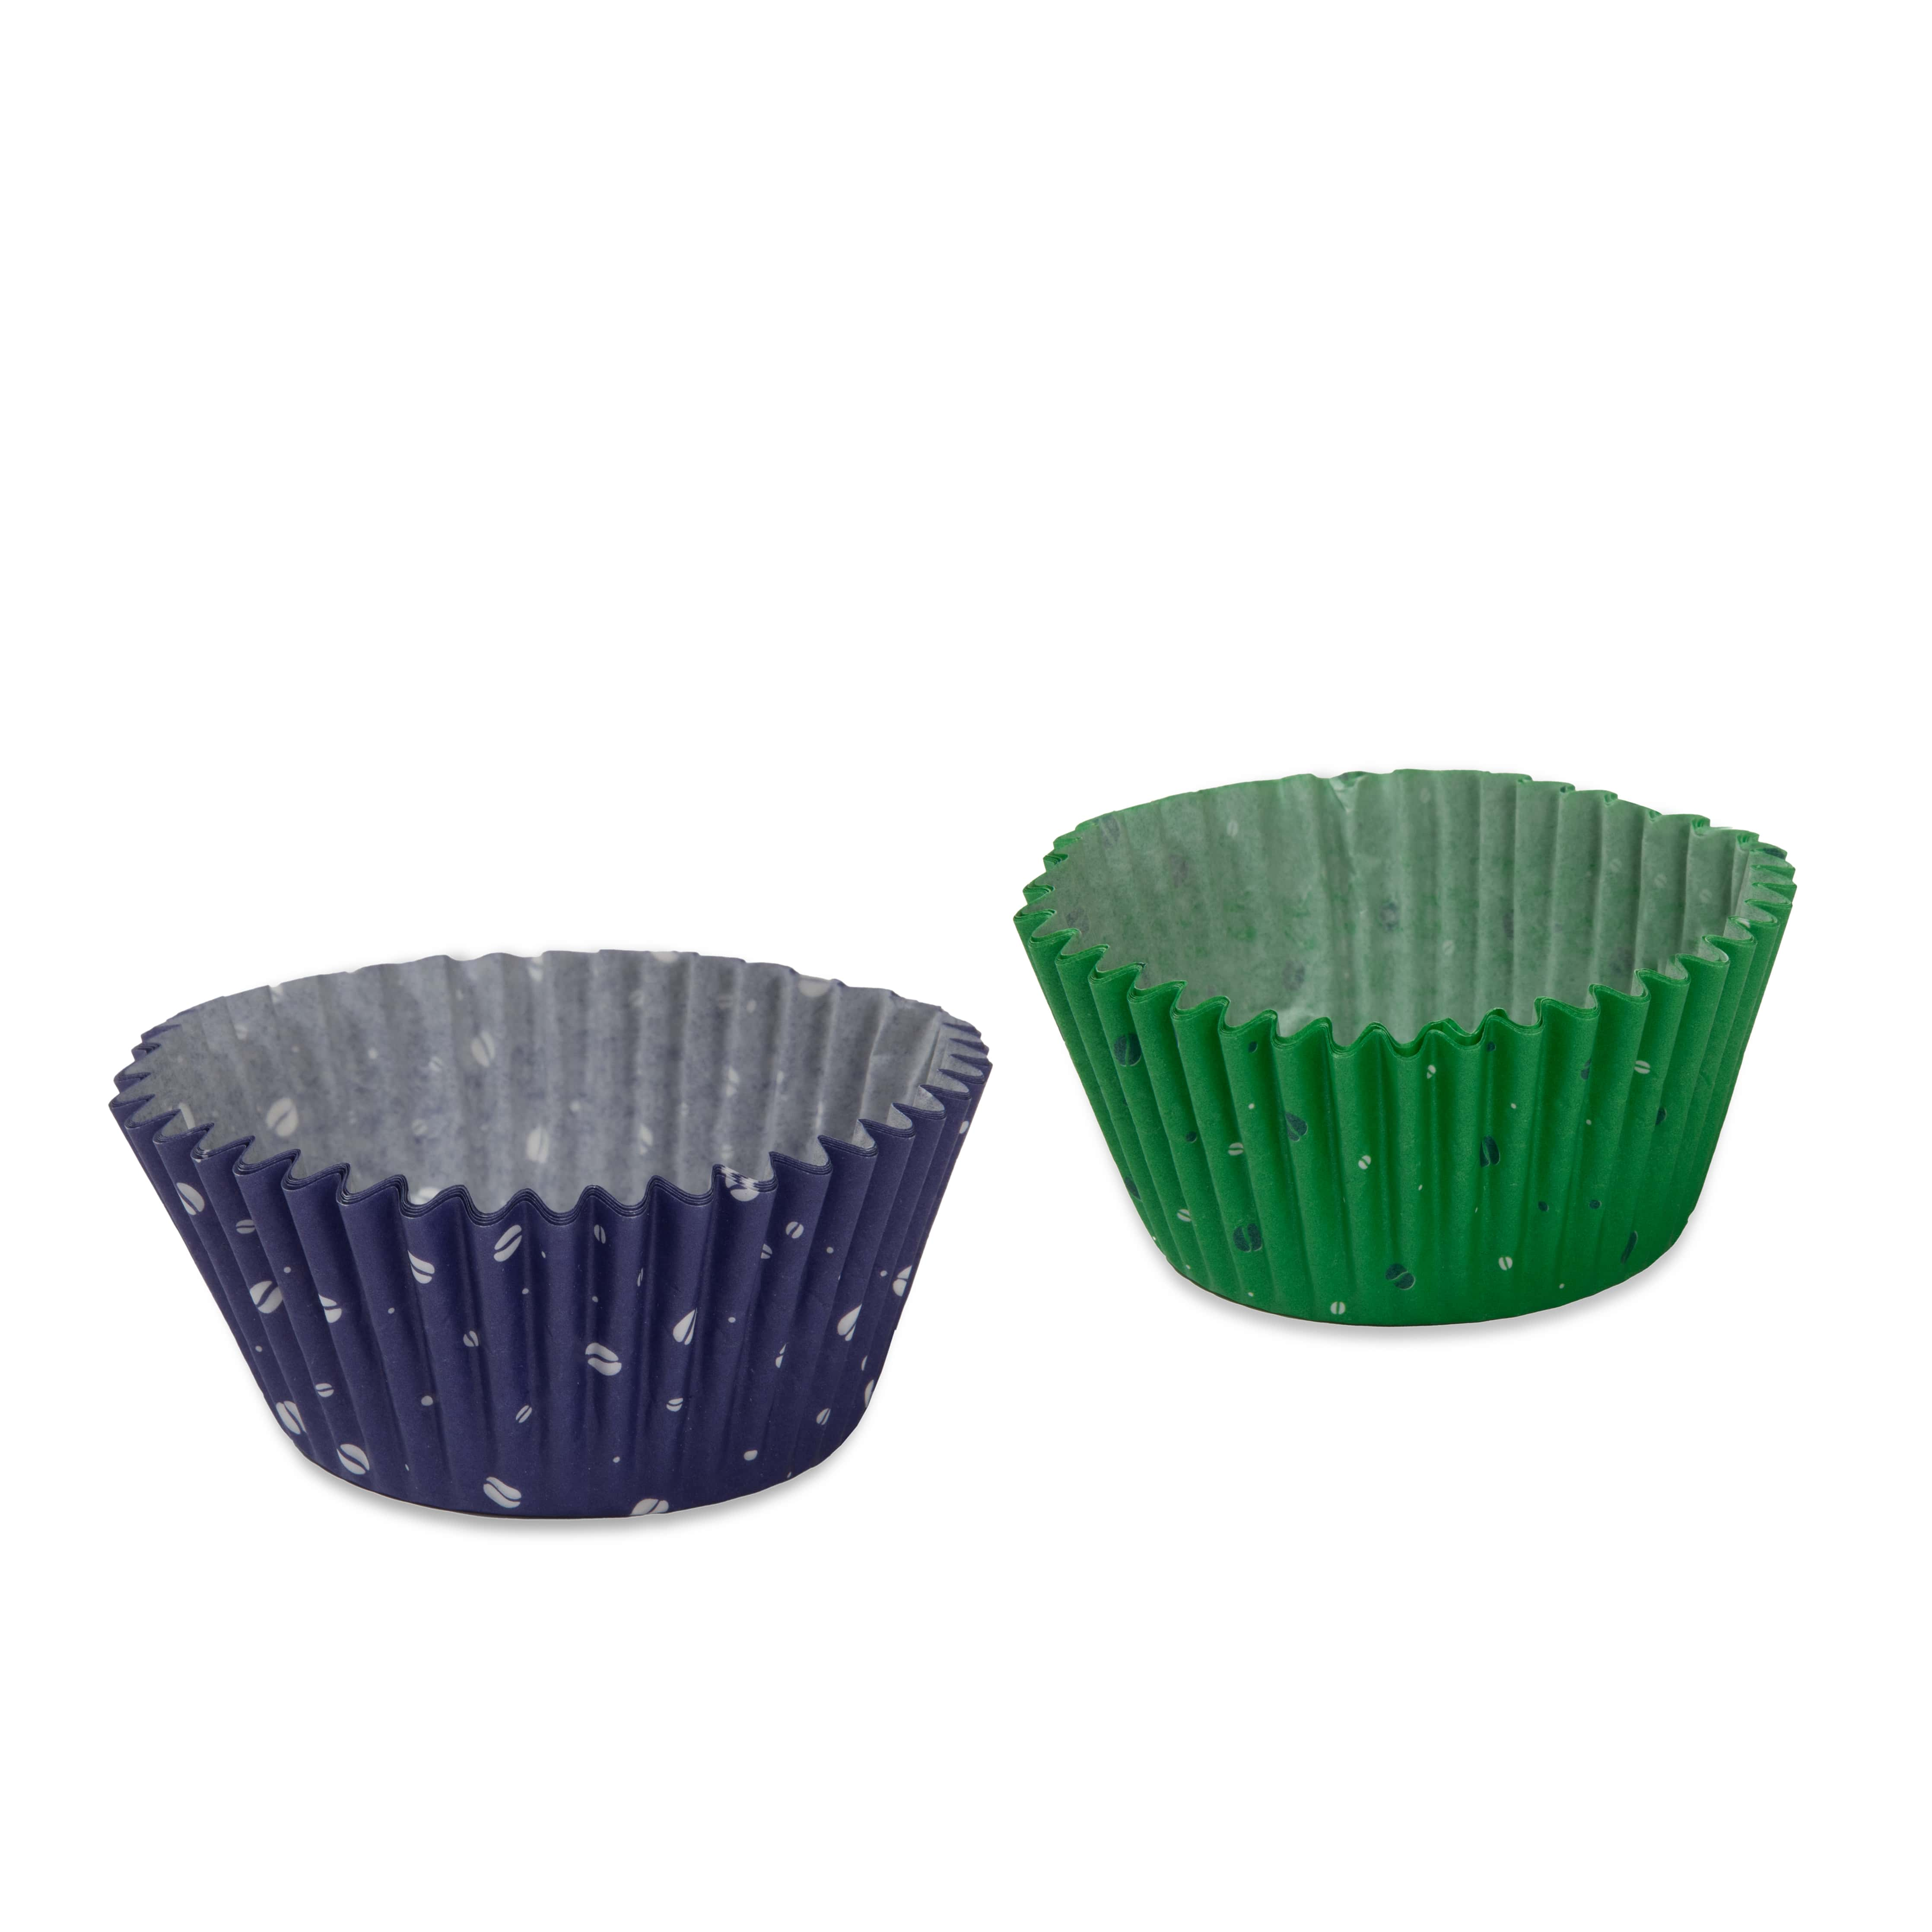 Purple cup cake case with white coffee beans. Green cup cake cases with white and purple polka dots.